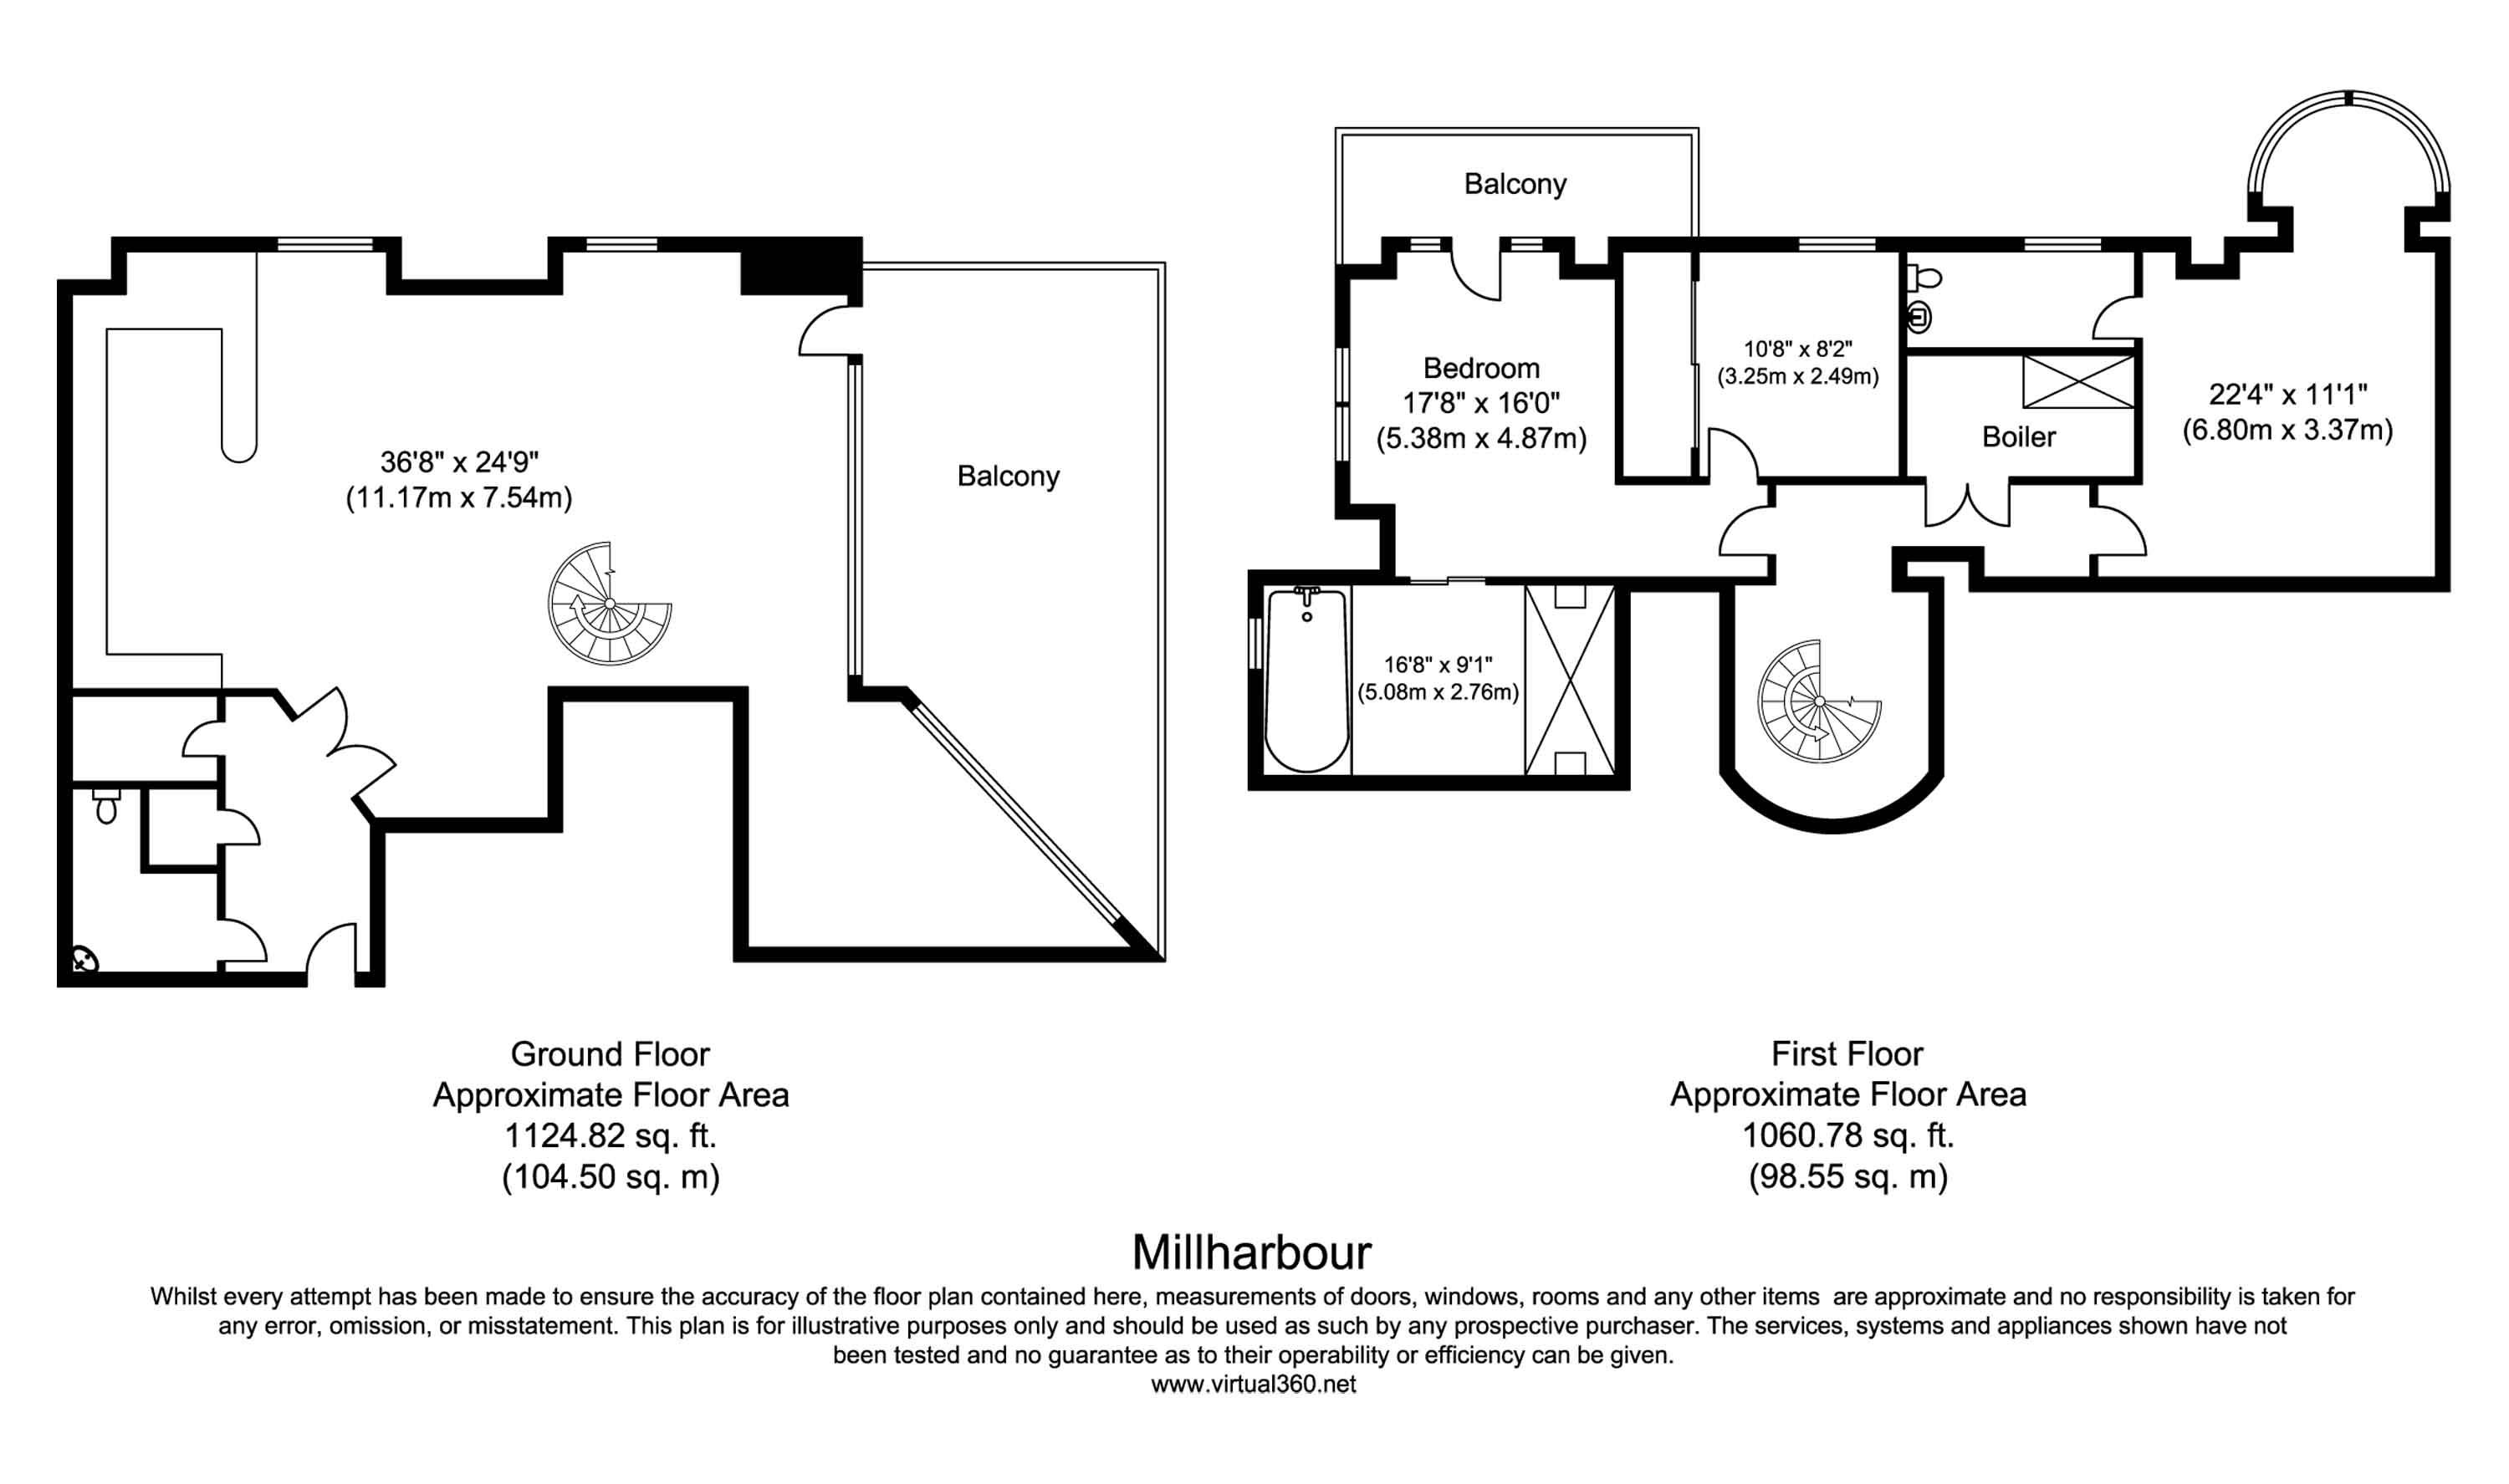 Floorplan for the property 2 bed Apartment to rent in 41 Millharbour, E14 - 1